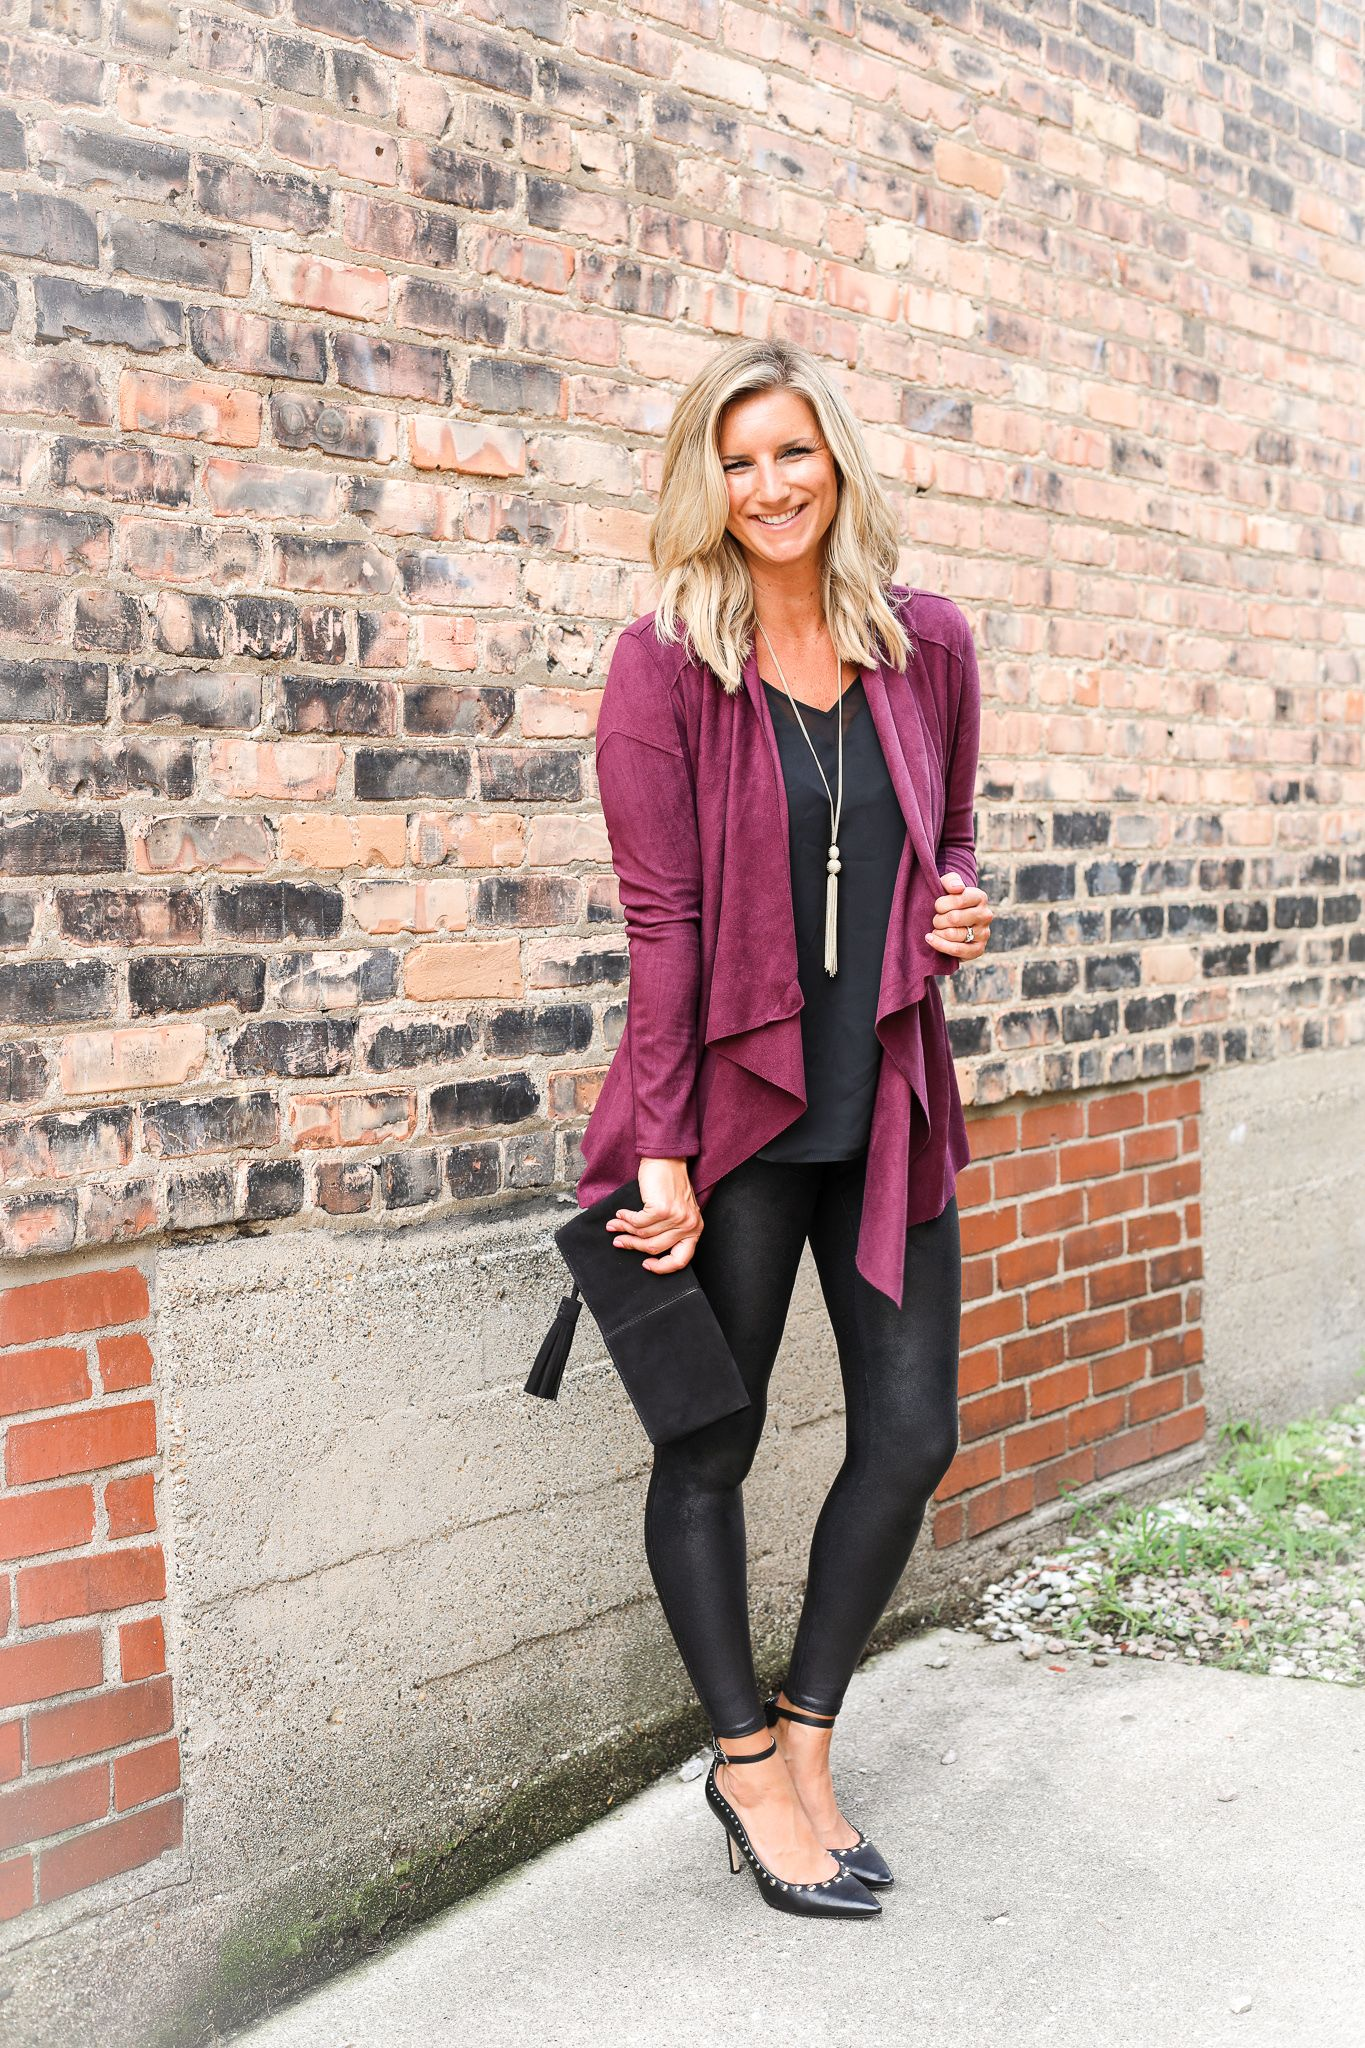 285a060b4946b How To Style Faux Leather Leggings [3 Ways - Work, Casual, Date Night!] -  Living in Yellow @nordstrom #nordstrom #ad